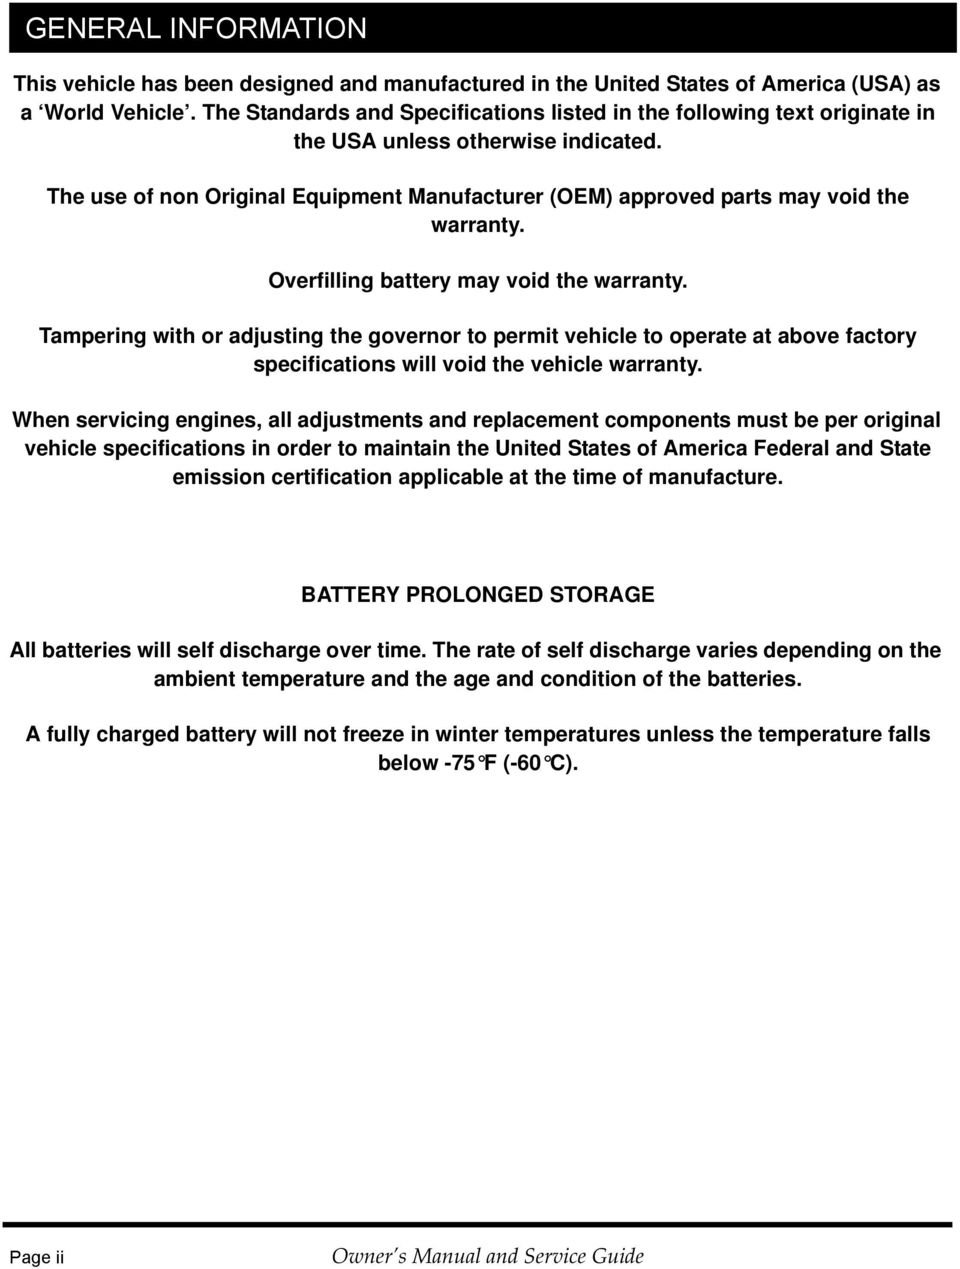 The use of non Original Equipment Manufacturer (OEM) approved parts may void the warranty. Overfilling battery may void the warranty.